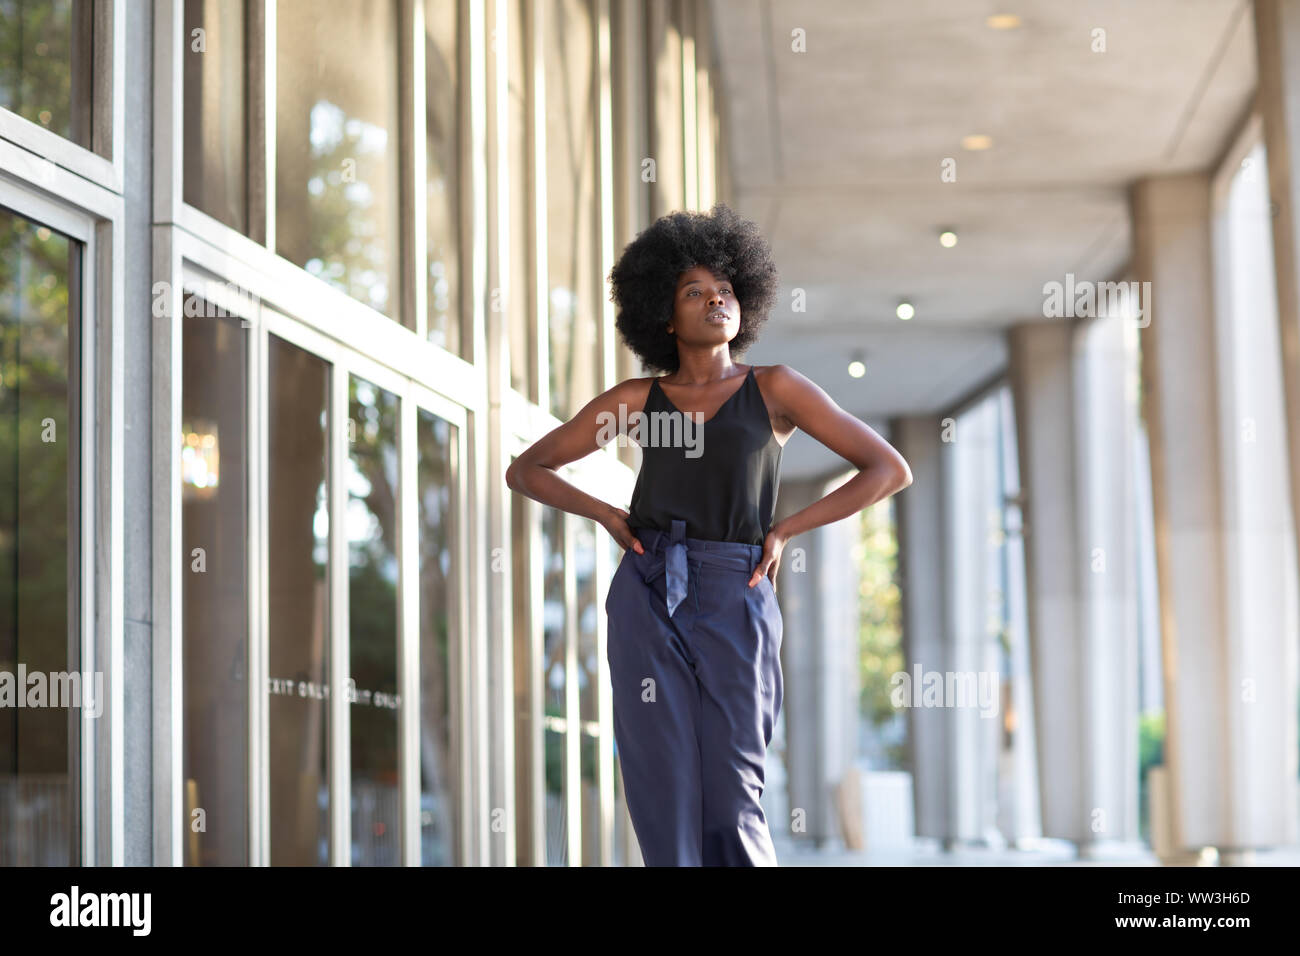 A young fashionable Afro-American woman walking down the street with her hands on her waist Stock Photo